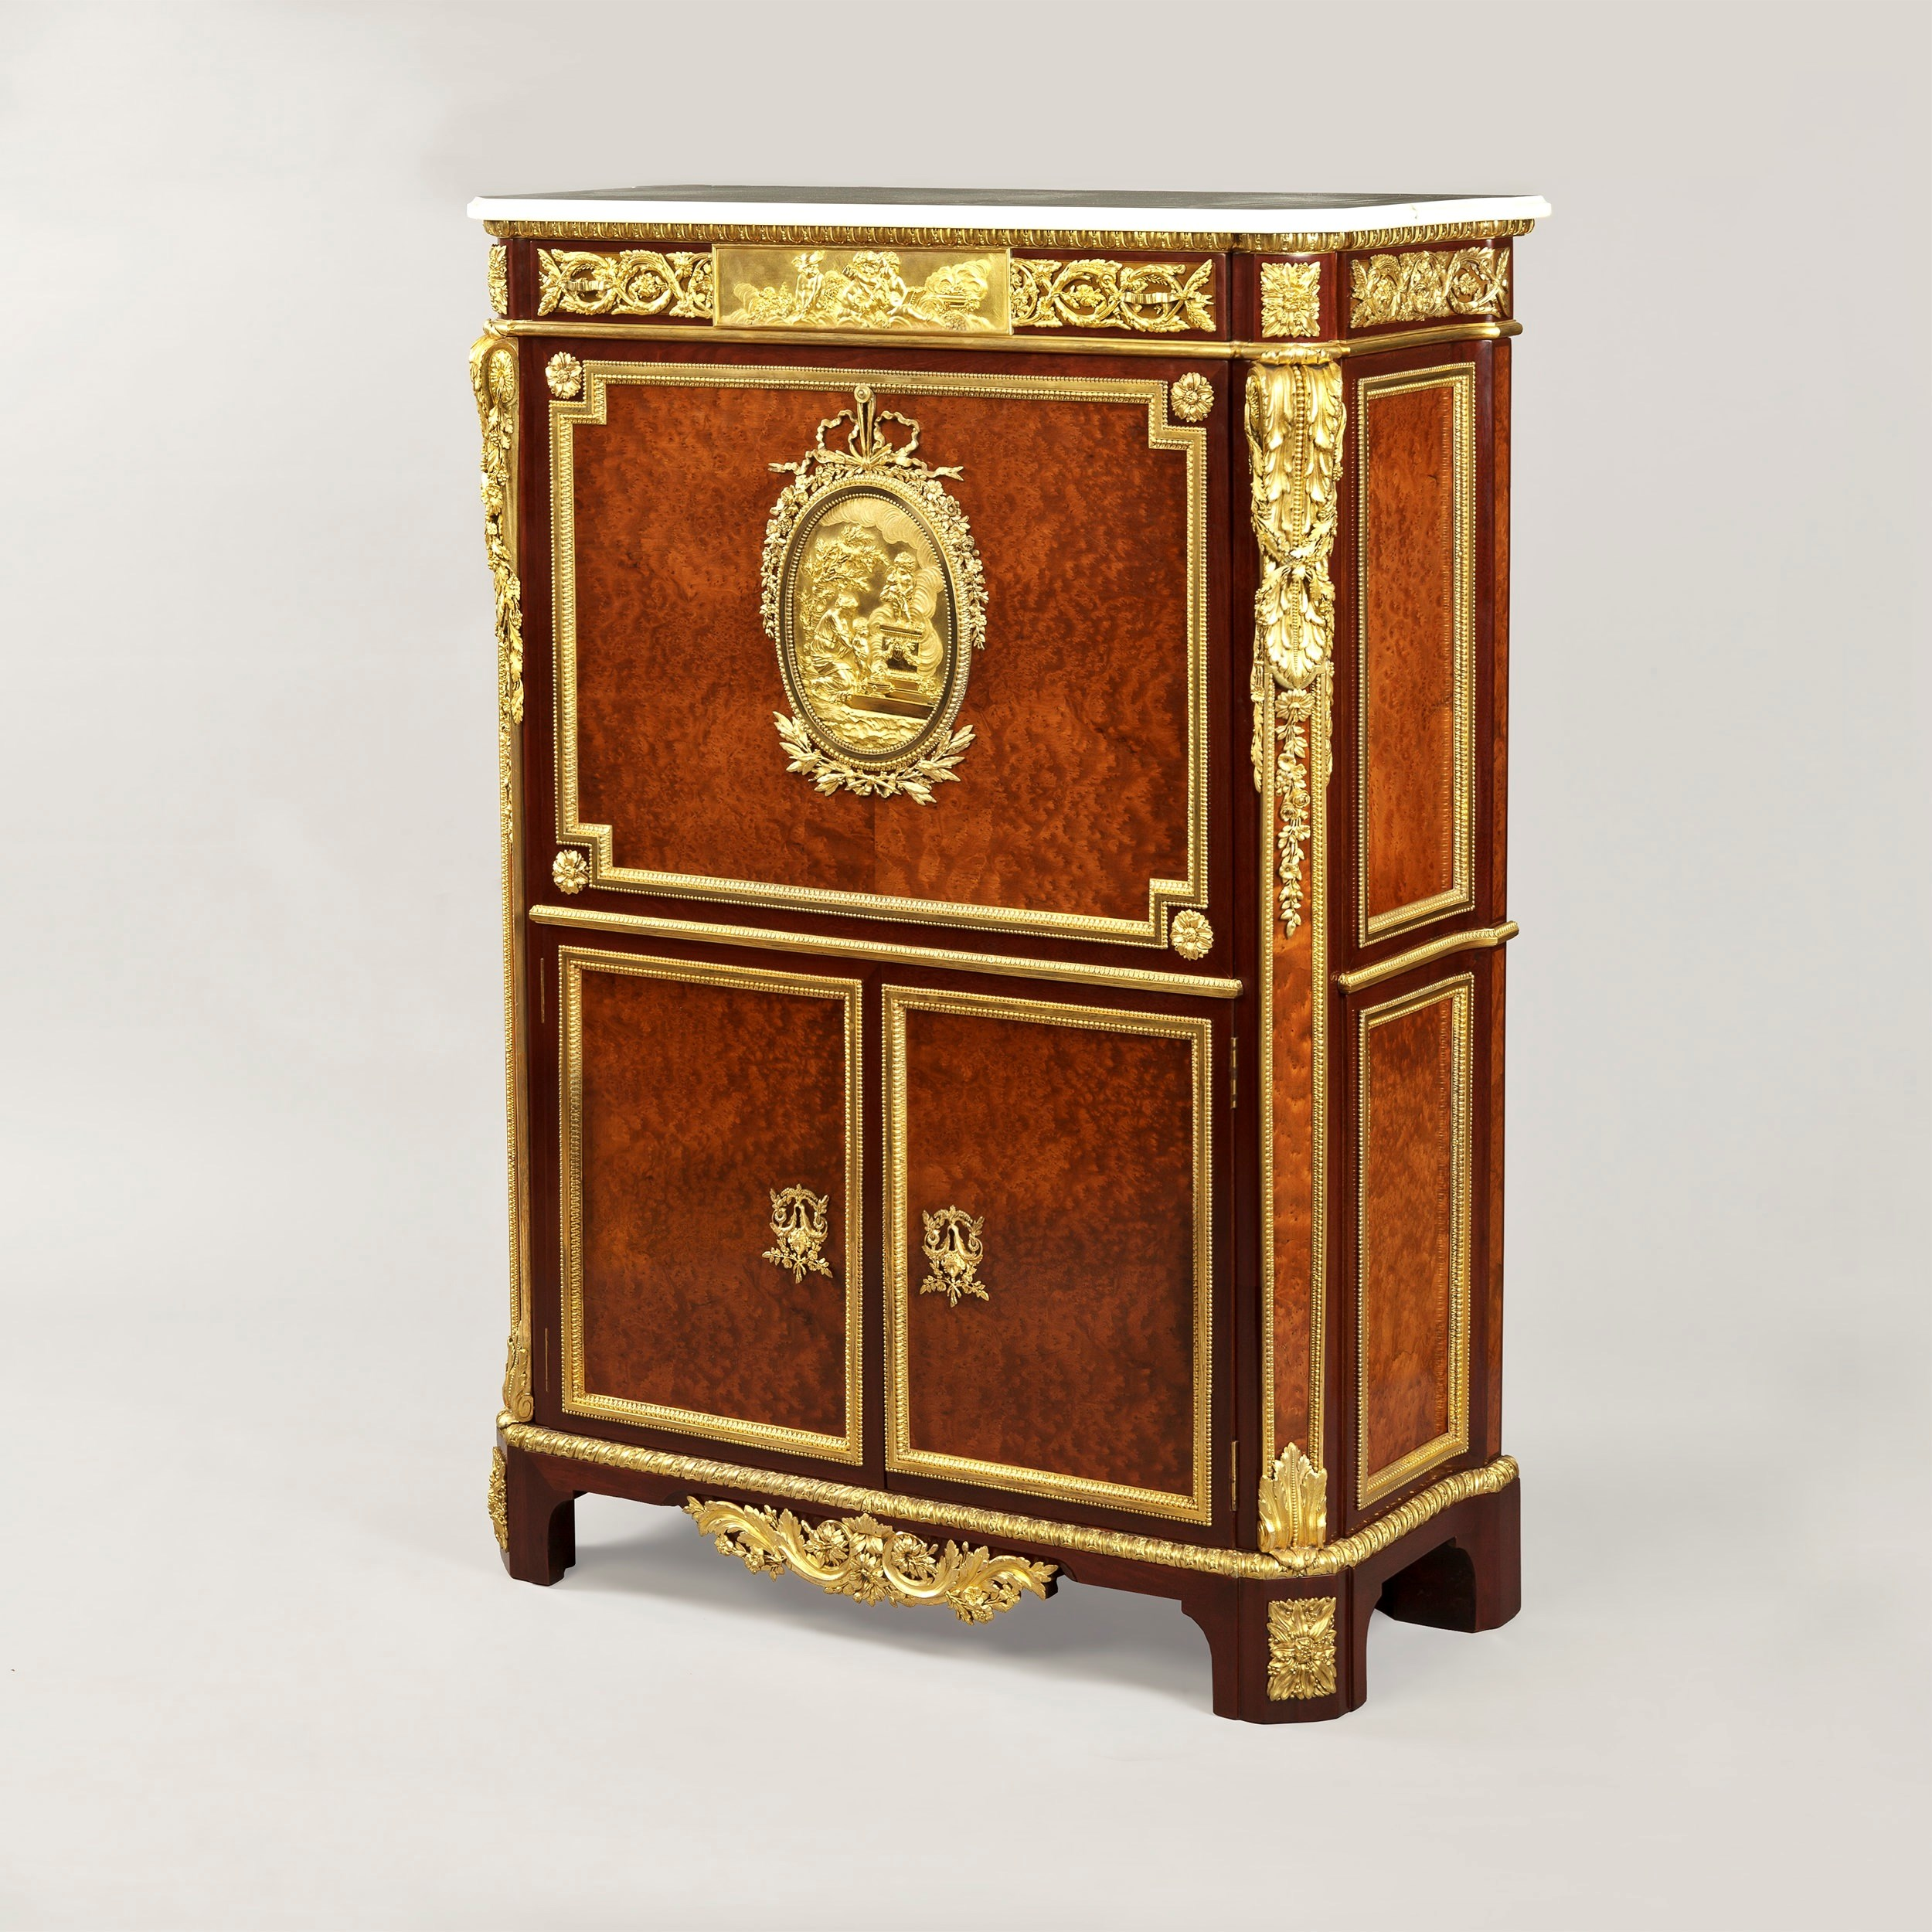 An Exceptionally Rare Secrétaire,  After the J.H. Riesener example in The Wallace Collection  Of upright rectangular form with canted corners; veneered in thuya-wood, and banded in purple-wood, exuberantly dressed with gilt bronze mounts of the highest quality, and having a Carrara marble top. Rising from bracket feet, the lower apron has a strong gilt bronze mount of stiff leaf acanthus foliates and volutes; the lower section has two lockable doors, with laurel wreathed escutcheons, the recessed panels, with gilt bronze frames, enclosing a shelf fitted interior. Over, the counter weighted lockable fall front has conforming recessed panels, mounted with a stepped gilt bronze indented band, the corners with rosettes of bay leaves, interspersed with berries. At the centre, an elliptical gilt bronze panel, depicting 'A Sacrifice to Love', a classically dressed woman presenting an infant to Cupid, who stands on a pedestal, wreathed by the scent from a brazier. The plaque has ribbon tied flowers, including roses, myrtle, narcissi and lilies-of-the-valley above, and below. The fall front encloses an interior fitted with drawers and pigeonholes.  The top frieze houses a drawer, having a centrally posited rectangular plaque, depicting three infants, one playing with a spaniel, one holding an open book, and handing a letter to the third infant, who wears the winged cap of Mercury, and has his caduceus at hand. The plaque issues sprays of roses, pinks, carnations and other flowers, with rosaces at the angles.  Over, a gilt bronze egg and dart band frames the shaped Carrara top. The canted front angles are pilasters, mounted with gilt bronze spandrels, cast as stiff leafed acanthus, having attached sprigs of oak leaves, berries and intertwined forget-me-nots, all within a gilt bronze stepped band.  Below, smaller acanthus leaf spandrels are dressed with chased volutes.   The sides are recessed and housed within running gilt bronze bands as seen on the lower doors, with a guard